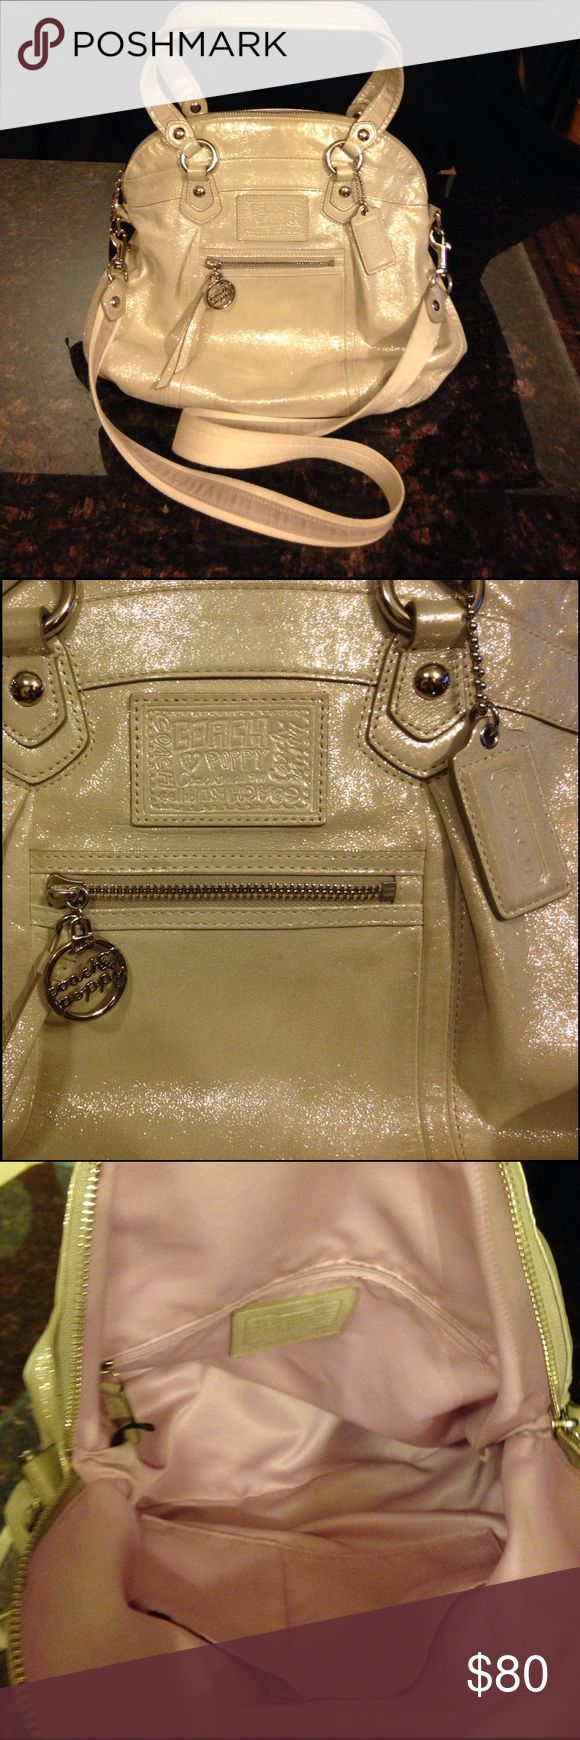 "Coach Poppy Highlight in Platinum # 16283 Coach Poppy Highlight # 16283 in Platinum. Silver colored hardware with lavender satin lining. Measures 14"" x 13"" x 4"" with a 7 1/2"" drop. Also includes the long cross-body strap. Coach box, dust bag & original price tag too!  Good used condition with no Major flaws - just normal wear from being carried. Coach Bags Shoulder Bags"